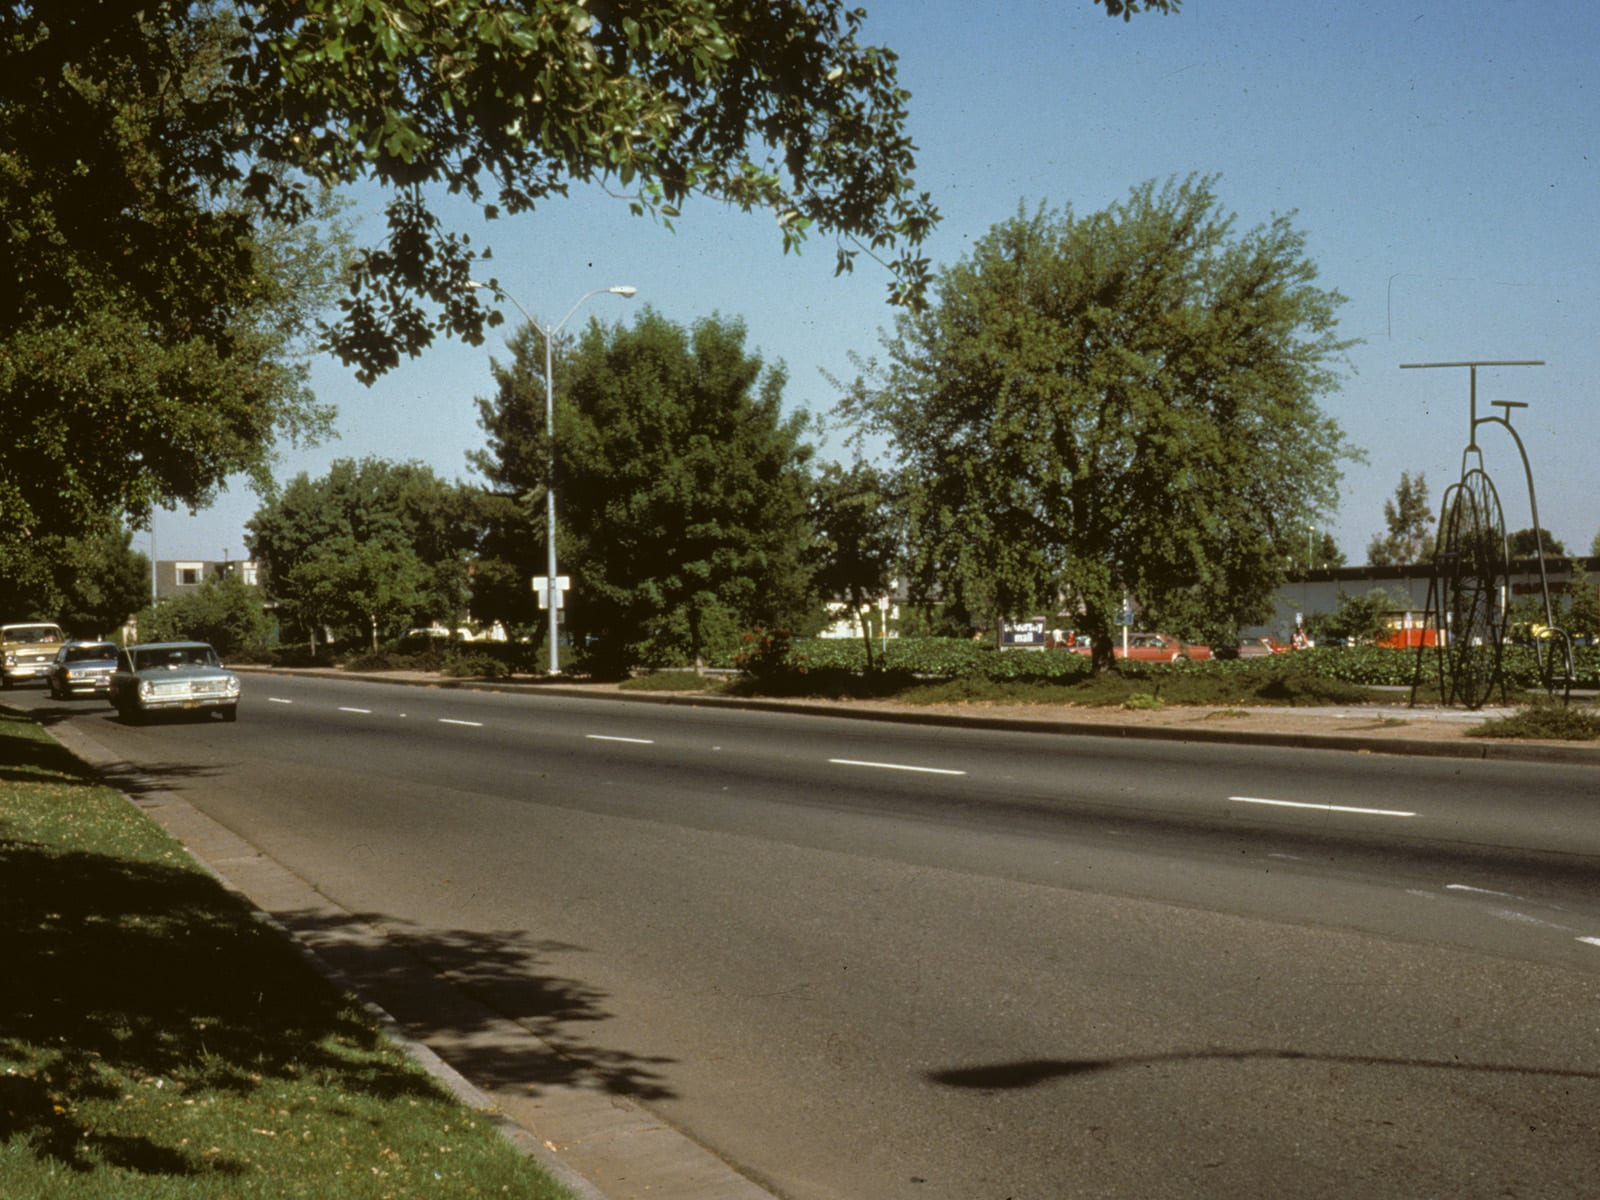 Russell Boulevard, reconstructed, circa 1976